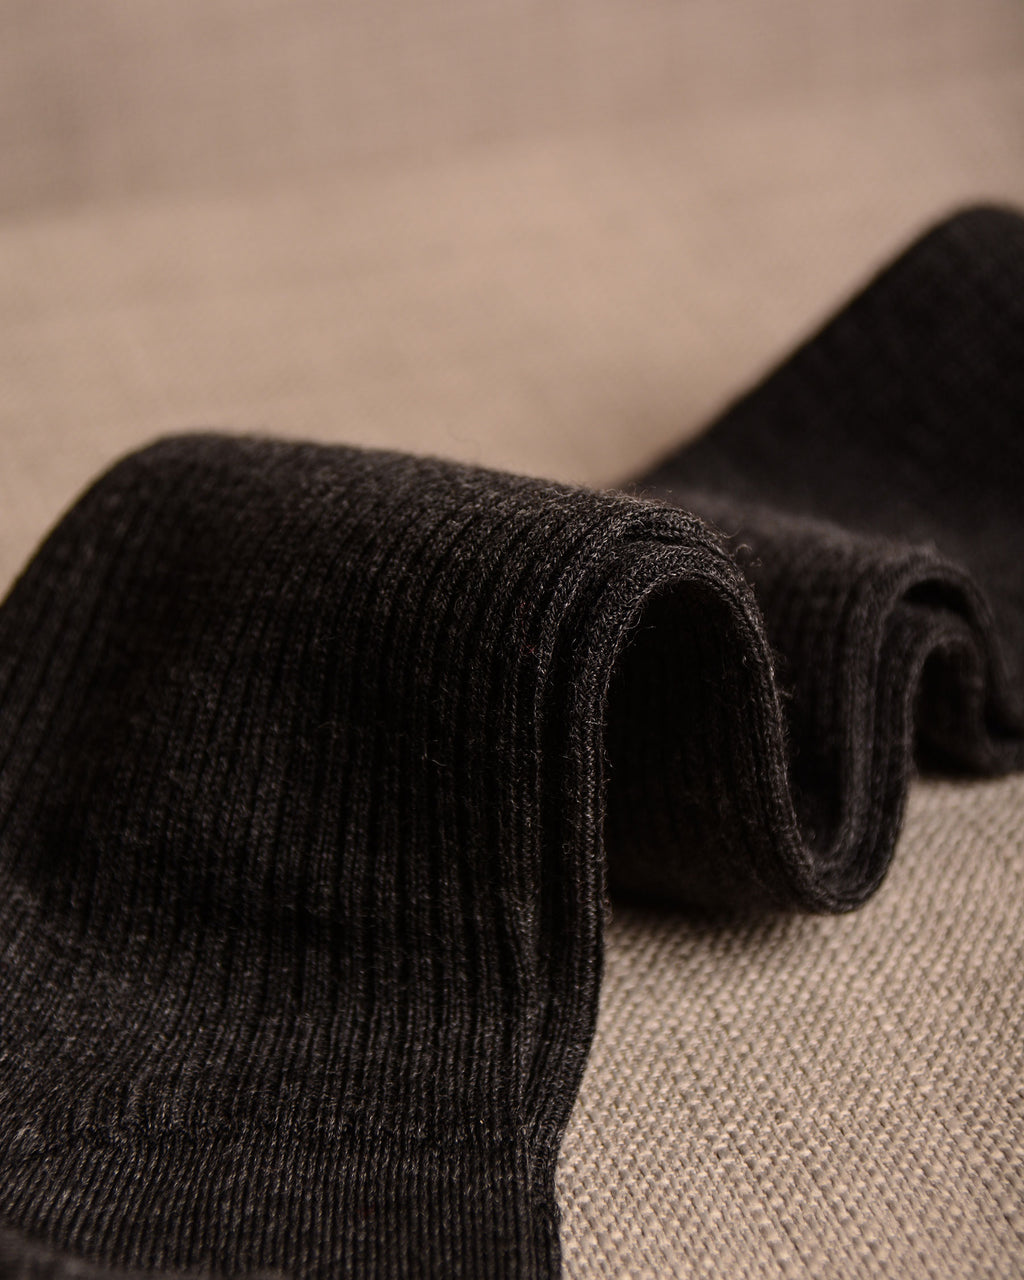 Pantherella Socks - Wool Graphite